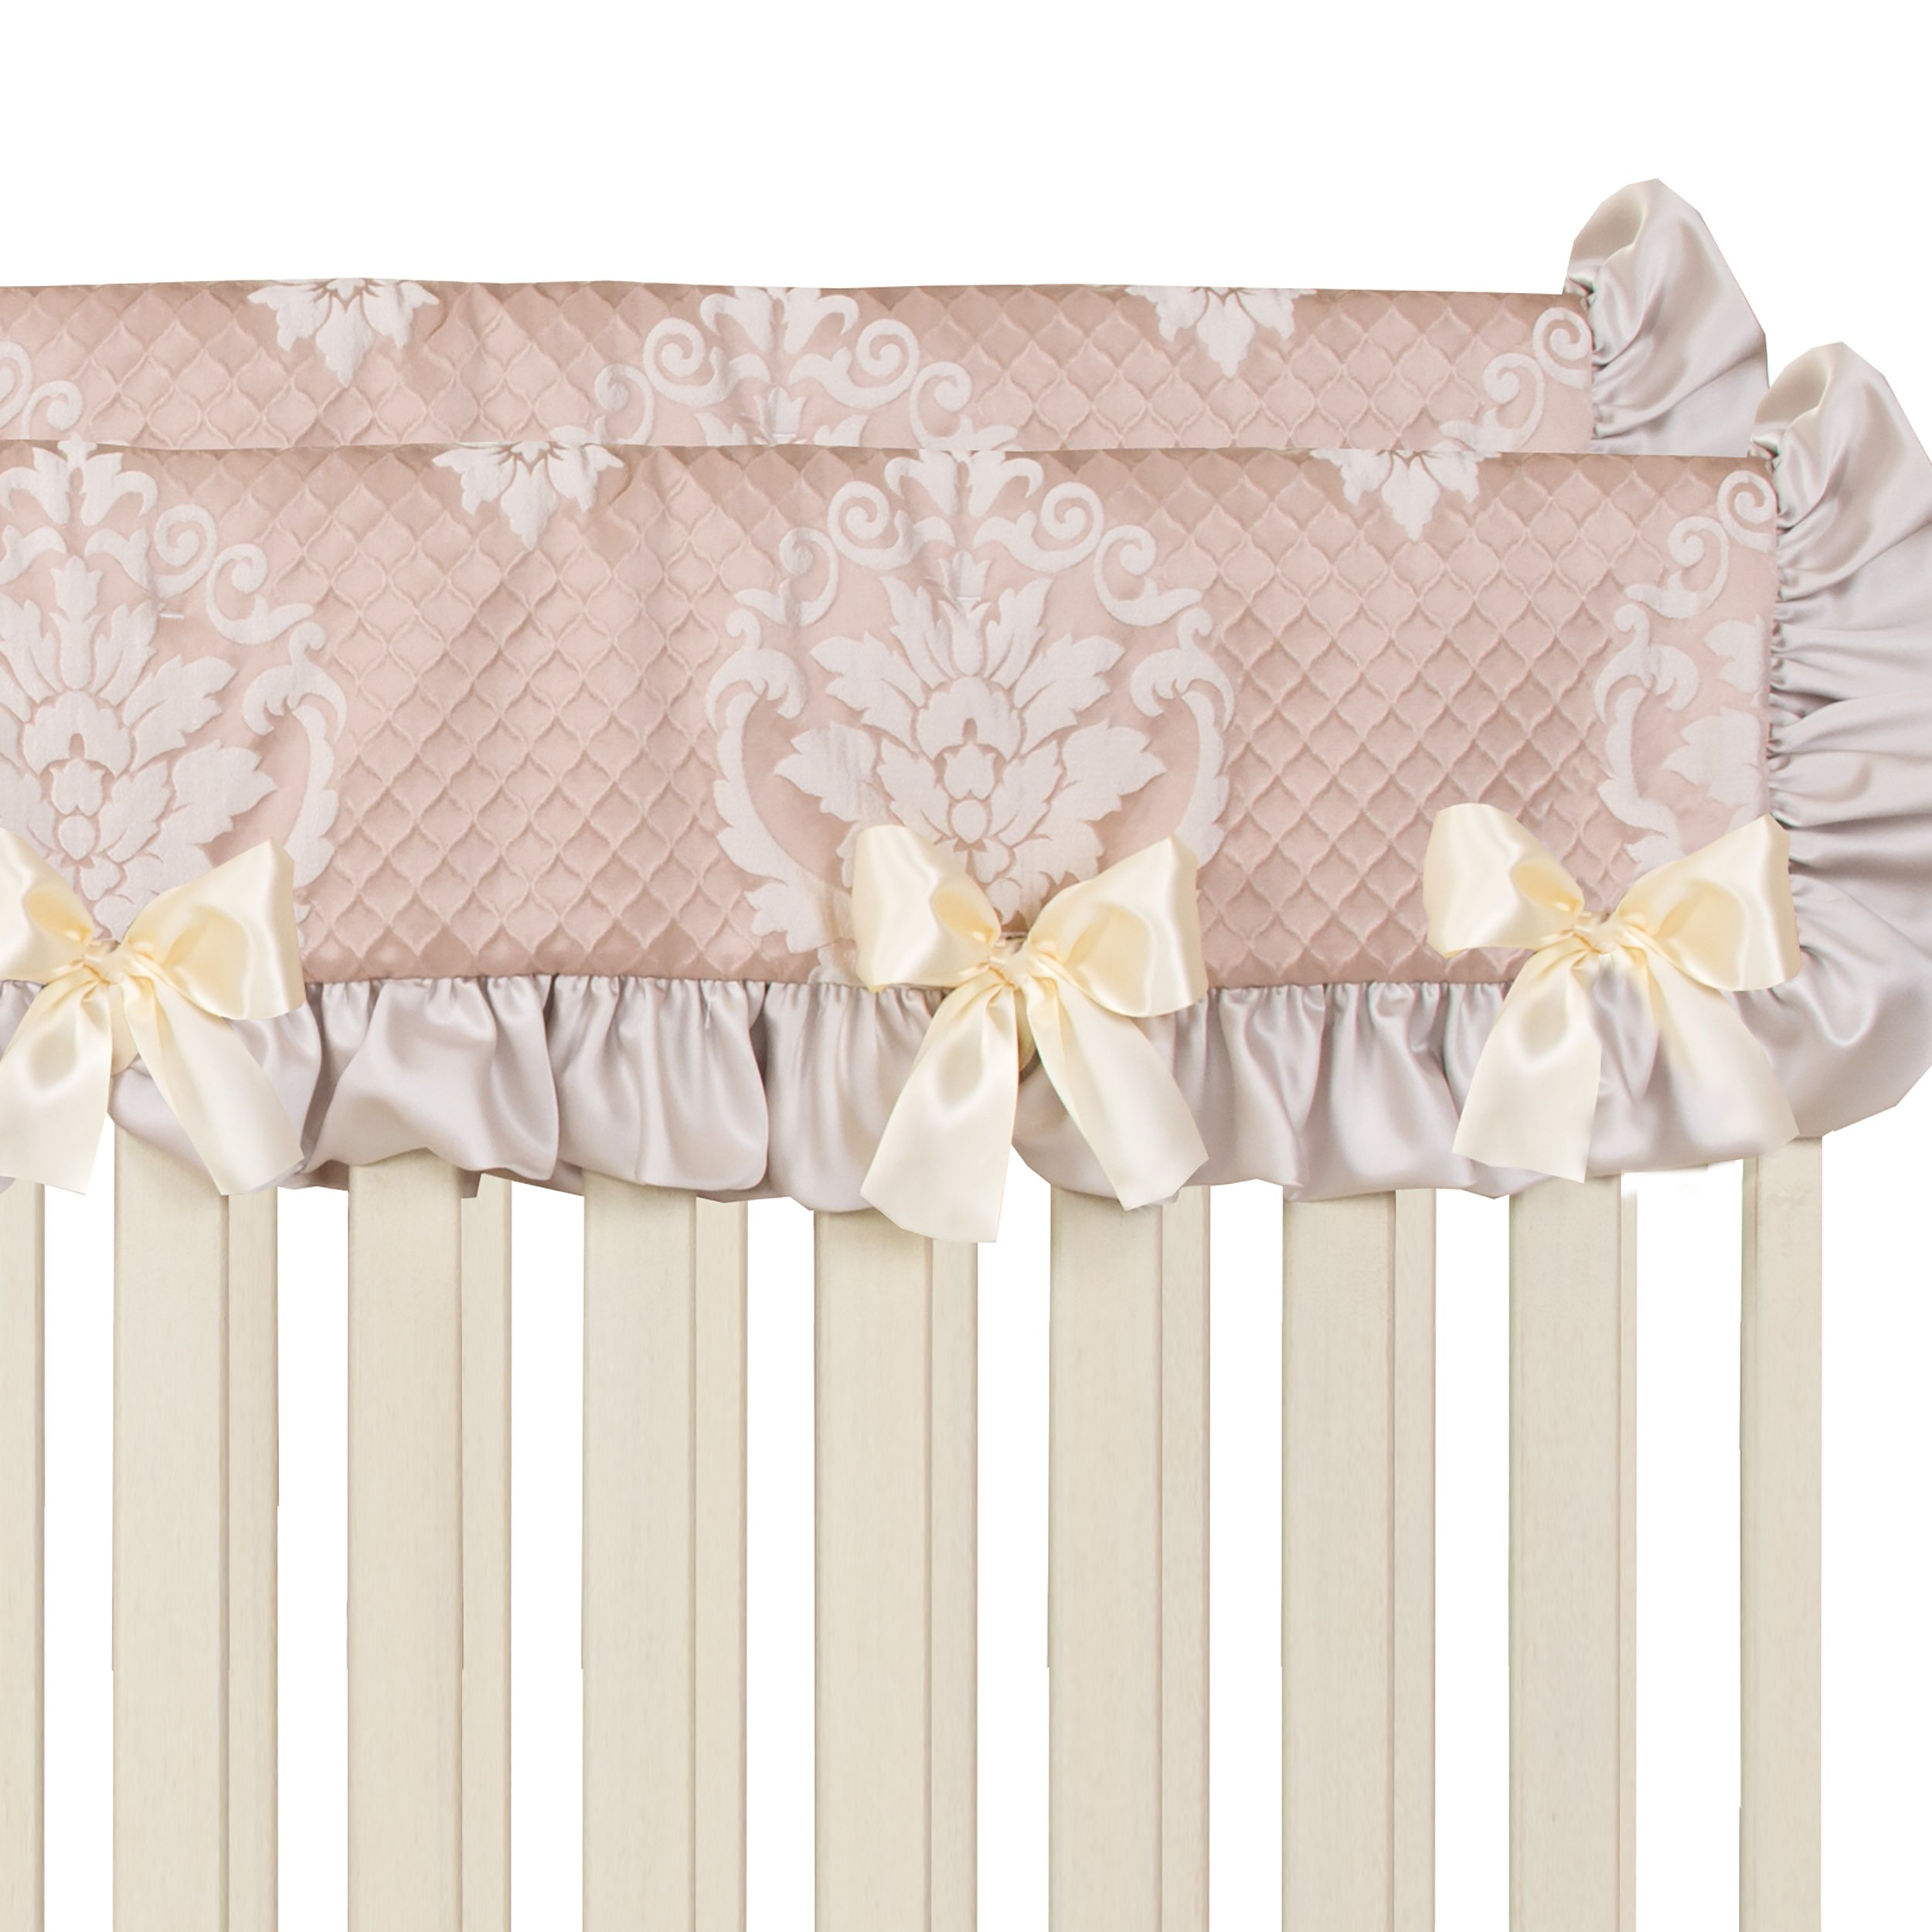 Glenna Jean 2 Piece Angelica Convertible Crib Rail Protector, Pink, Short, one Size by Glenna Jean